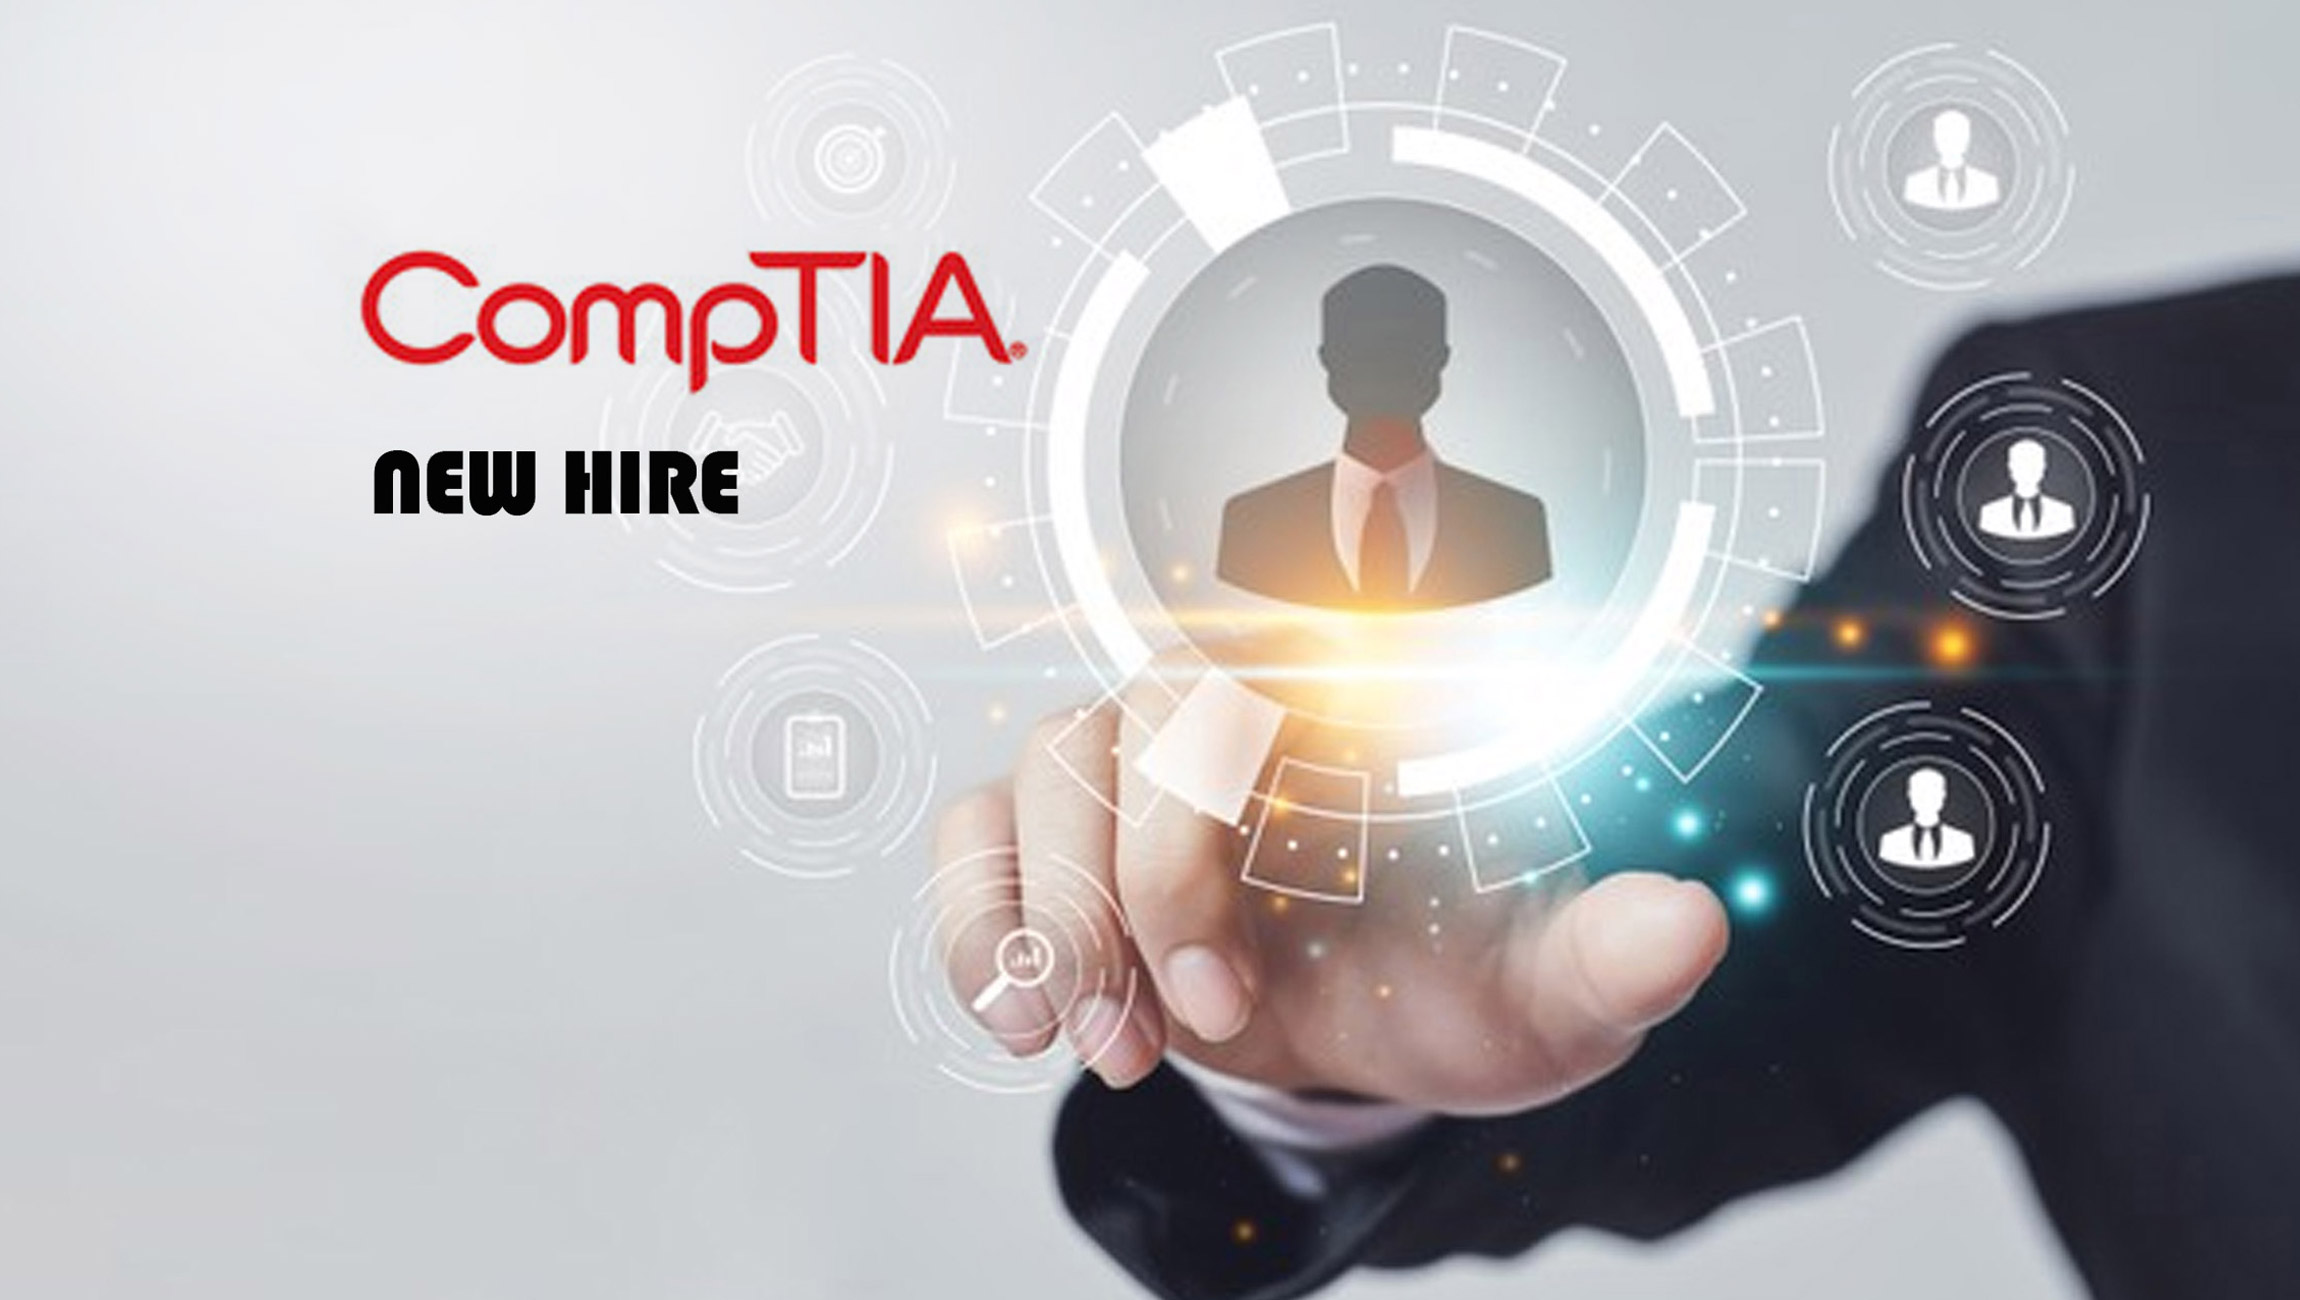 UK Tech Industry Leader Tracy Pound Selected as Chairwoman of the CompTIA Board of Directors